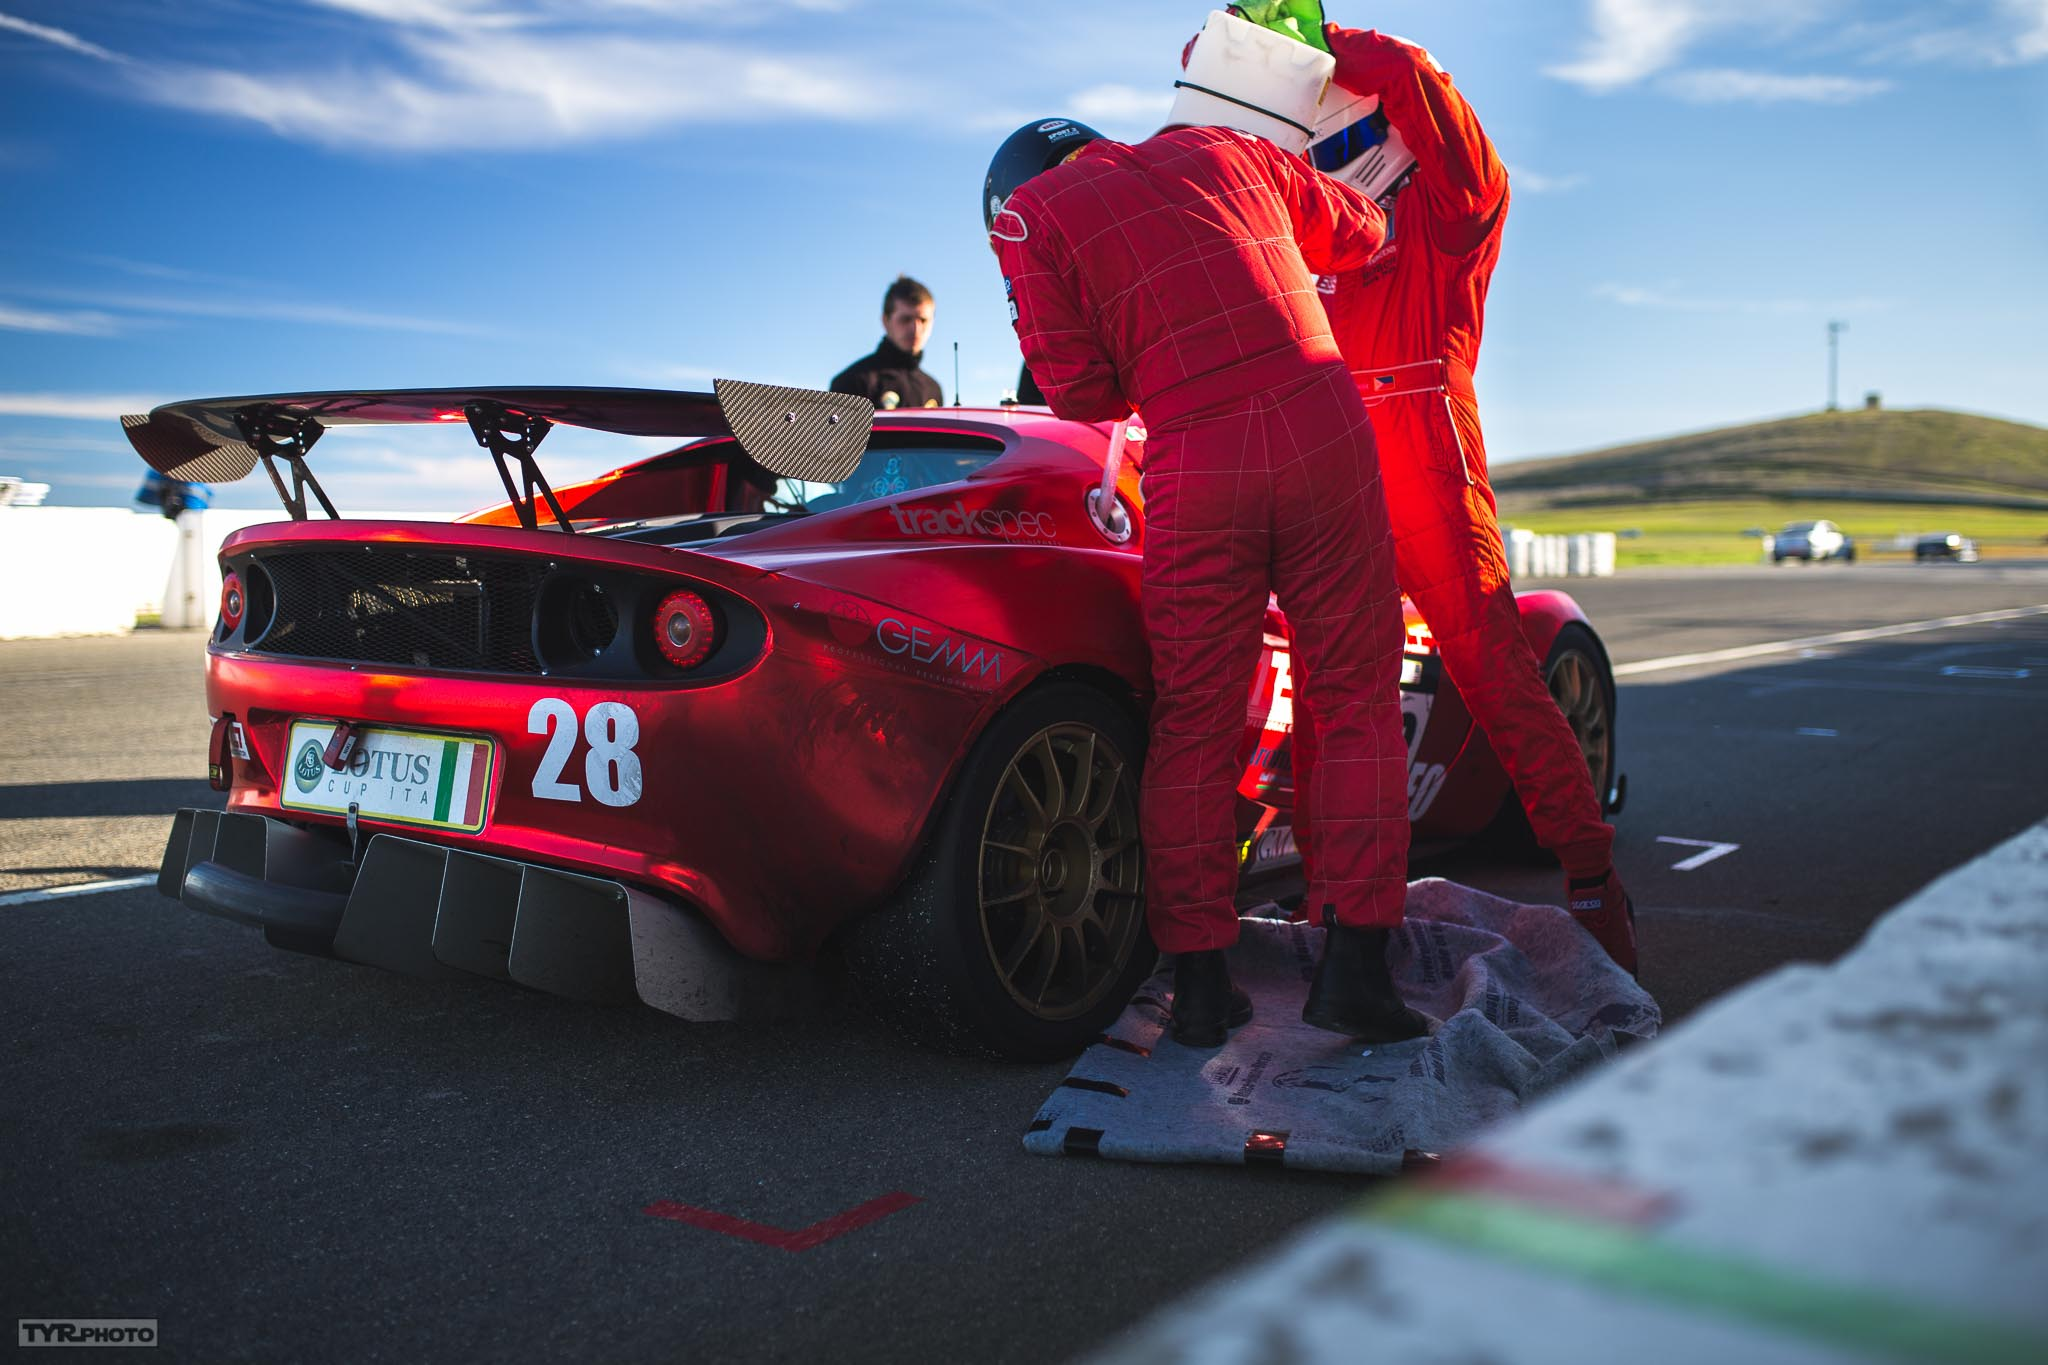 Aidan & Son fueling during a pit stop. Luca in the background making sure the car is okay. PC:  Trevor Ryan